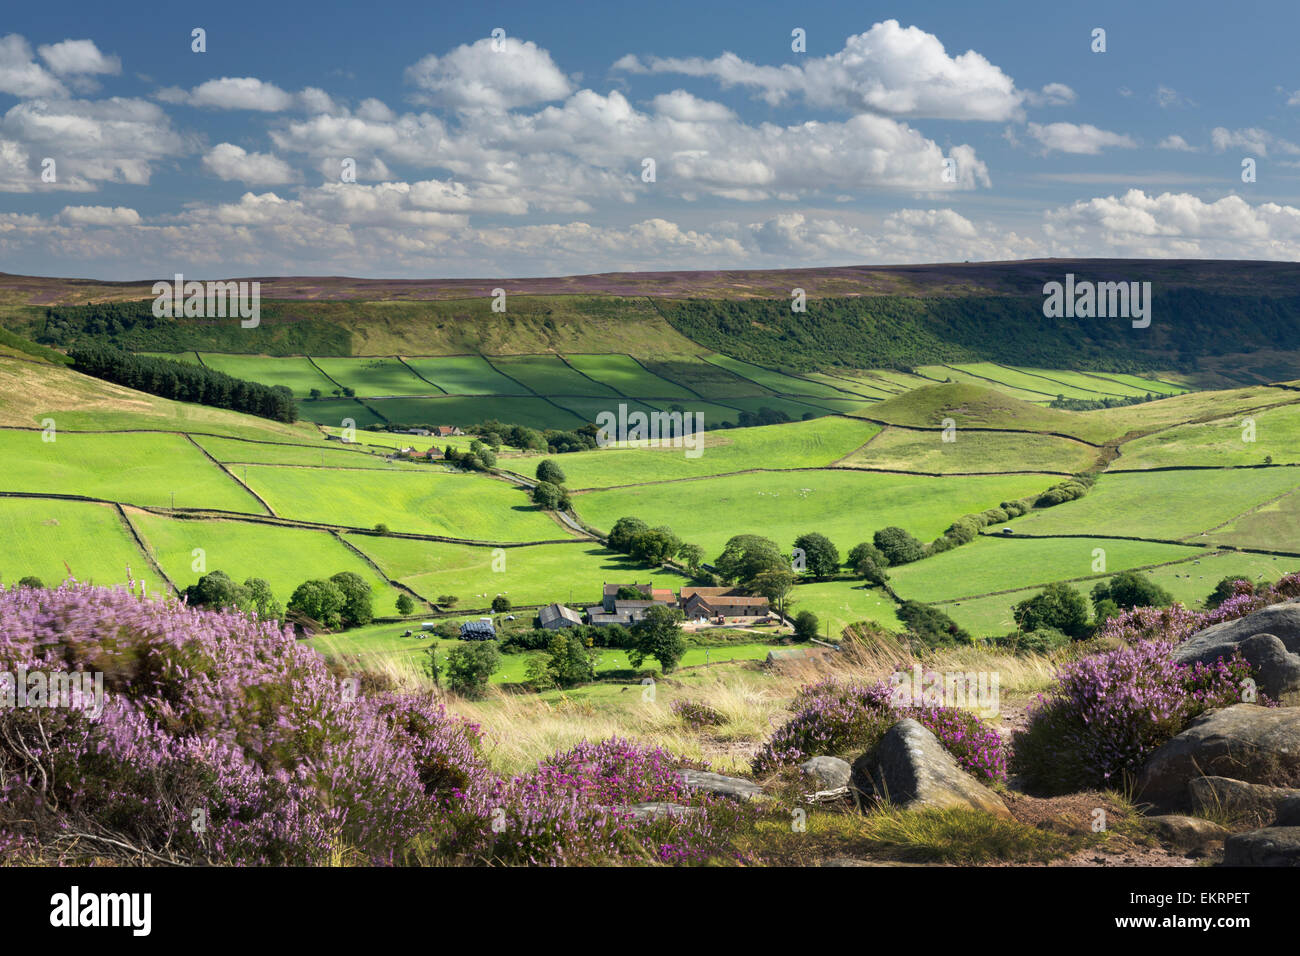 Fryupdale in the North Yorkshire Moors National Park, England. - Stock Image